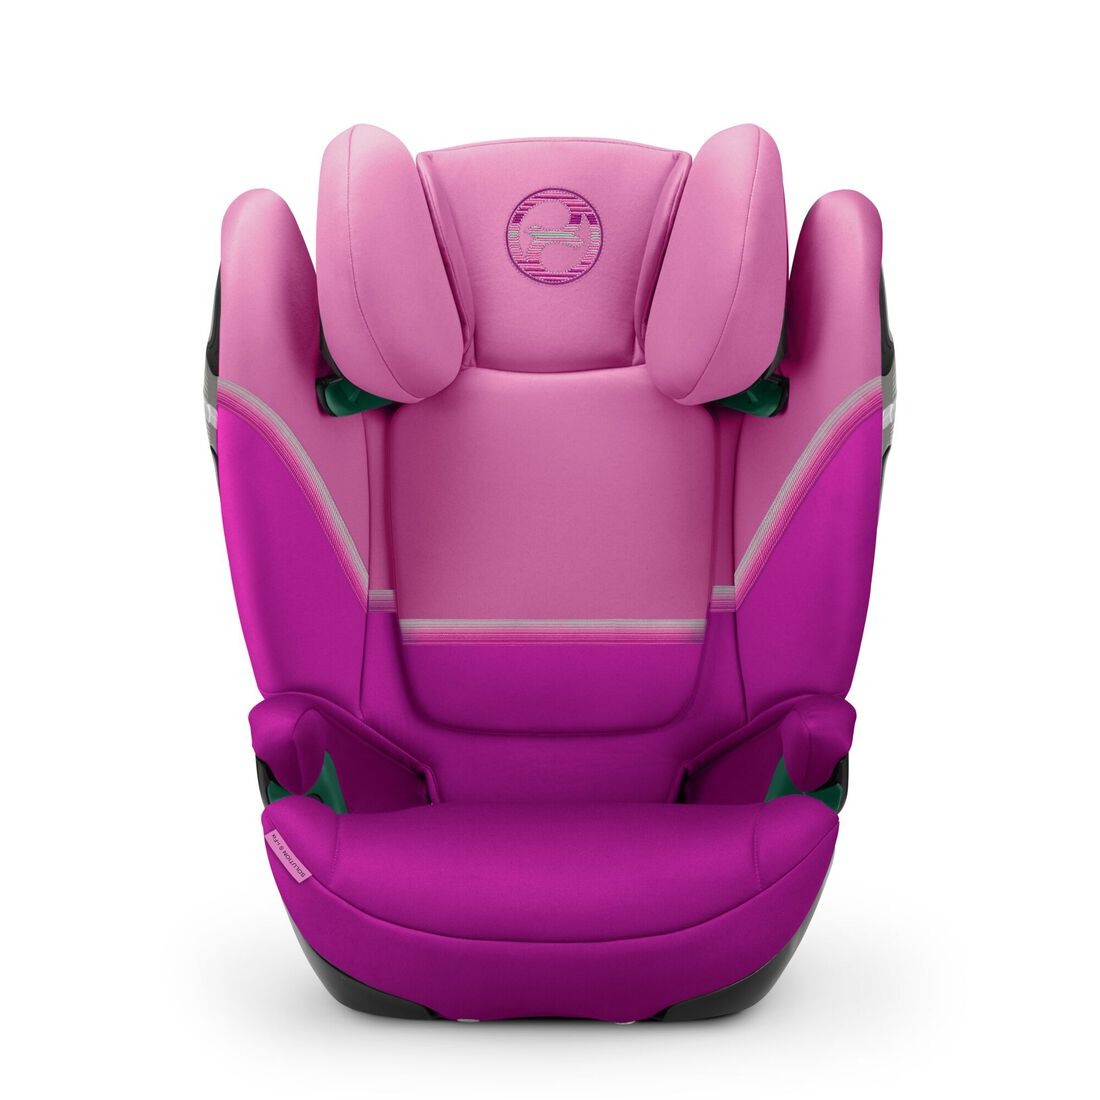 CYBEX Solution S2 i-Fix - Magnolia Pink in Magnolia Pink large image number 2